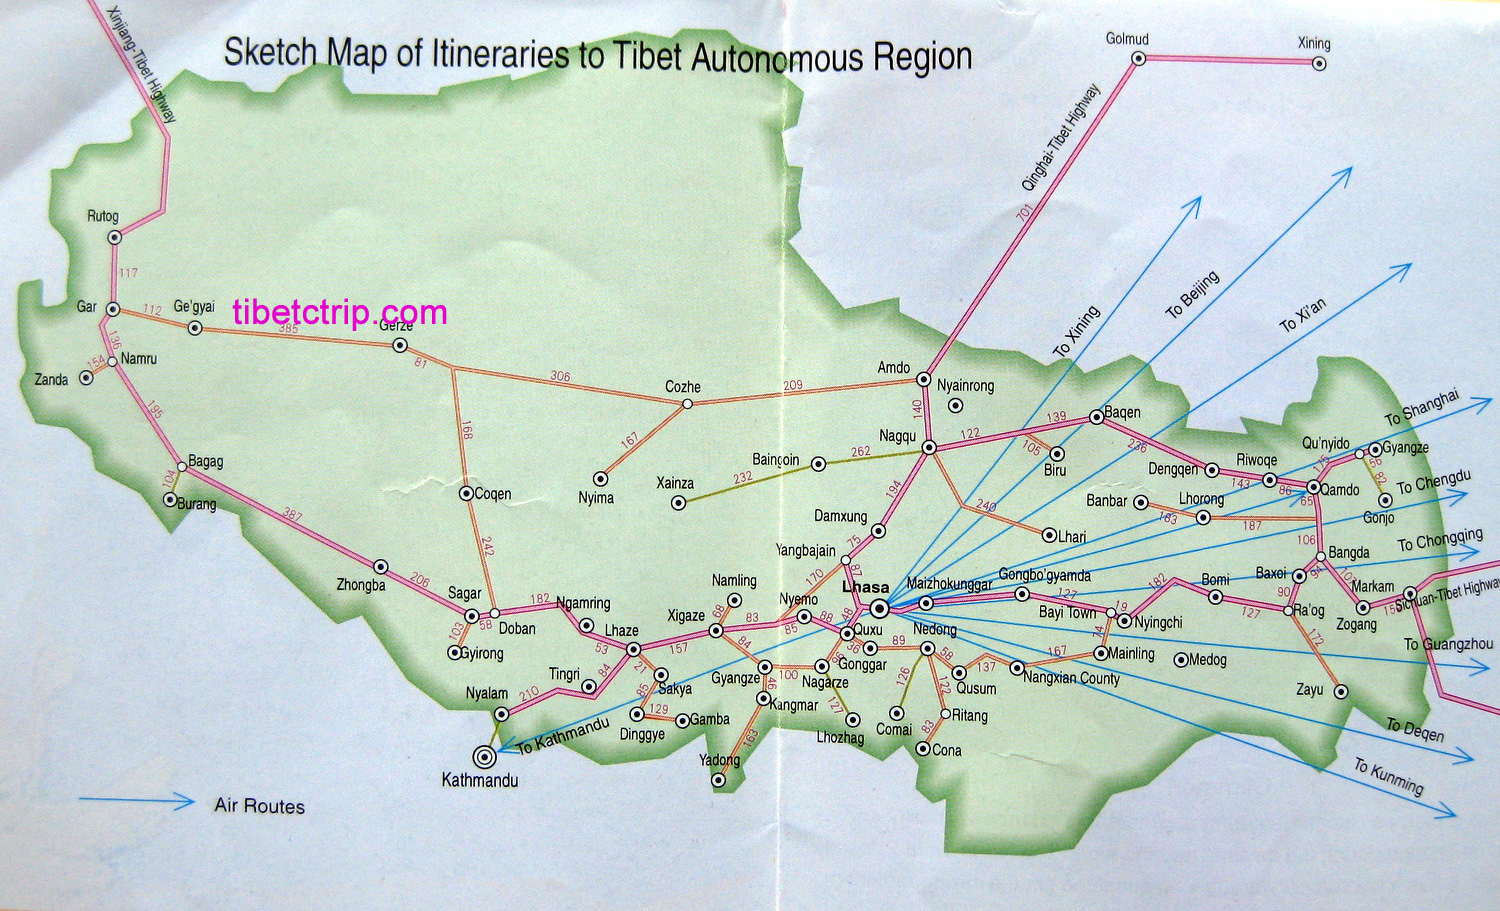 Tibet Travel Maps Tibet Tourist Travel Maps New Maps Of Tibet - Tibet in world map